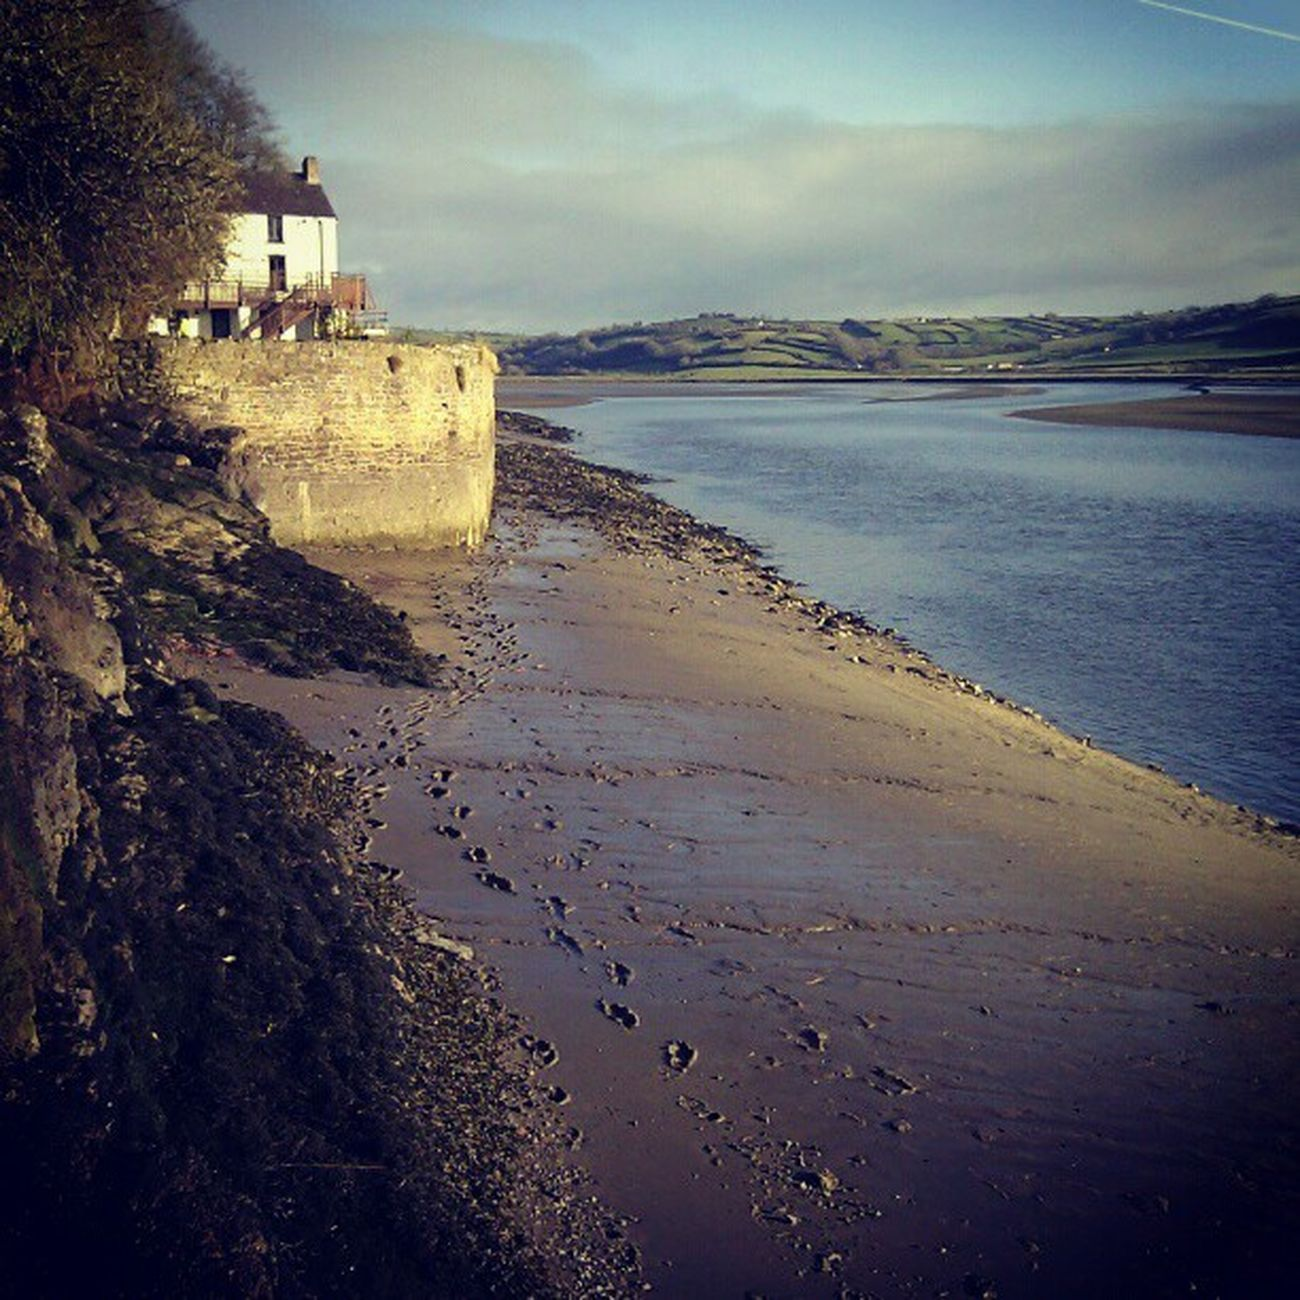 The Boat House. Wales Laugharne DylanThomas Phonography  Pickoftheday Photoftheday Footprints